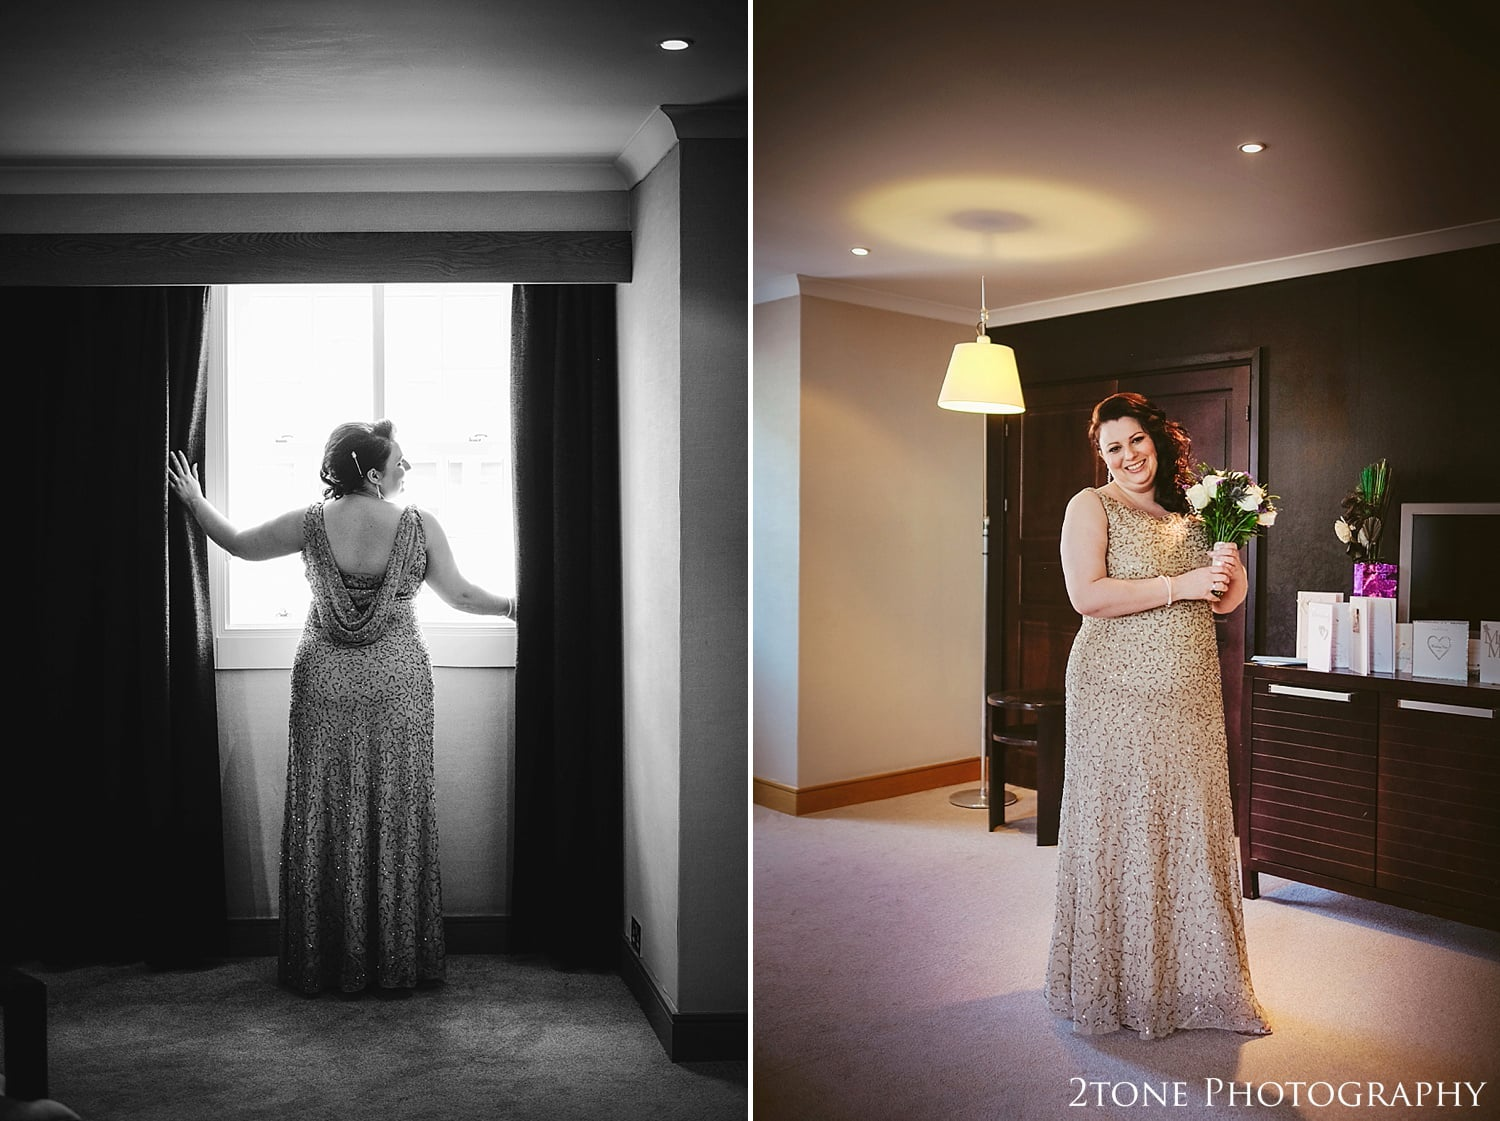 Wedding Photography in Edinburgh by 2tone Photography